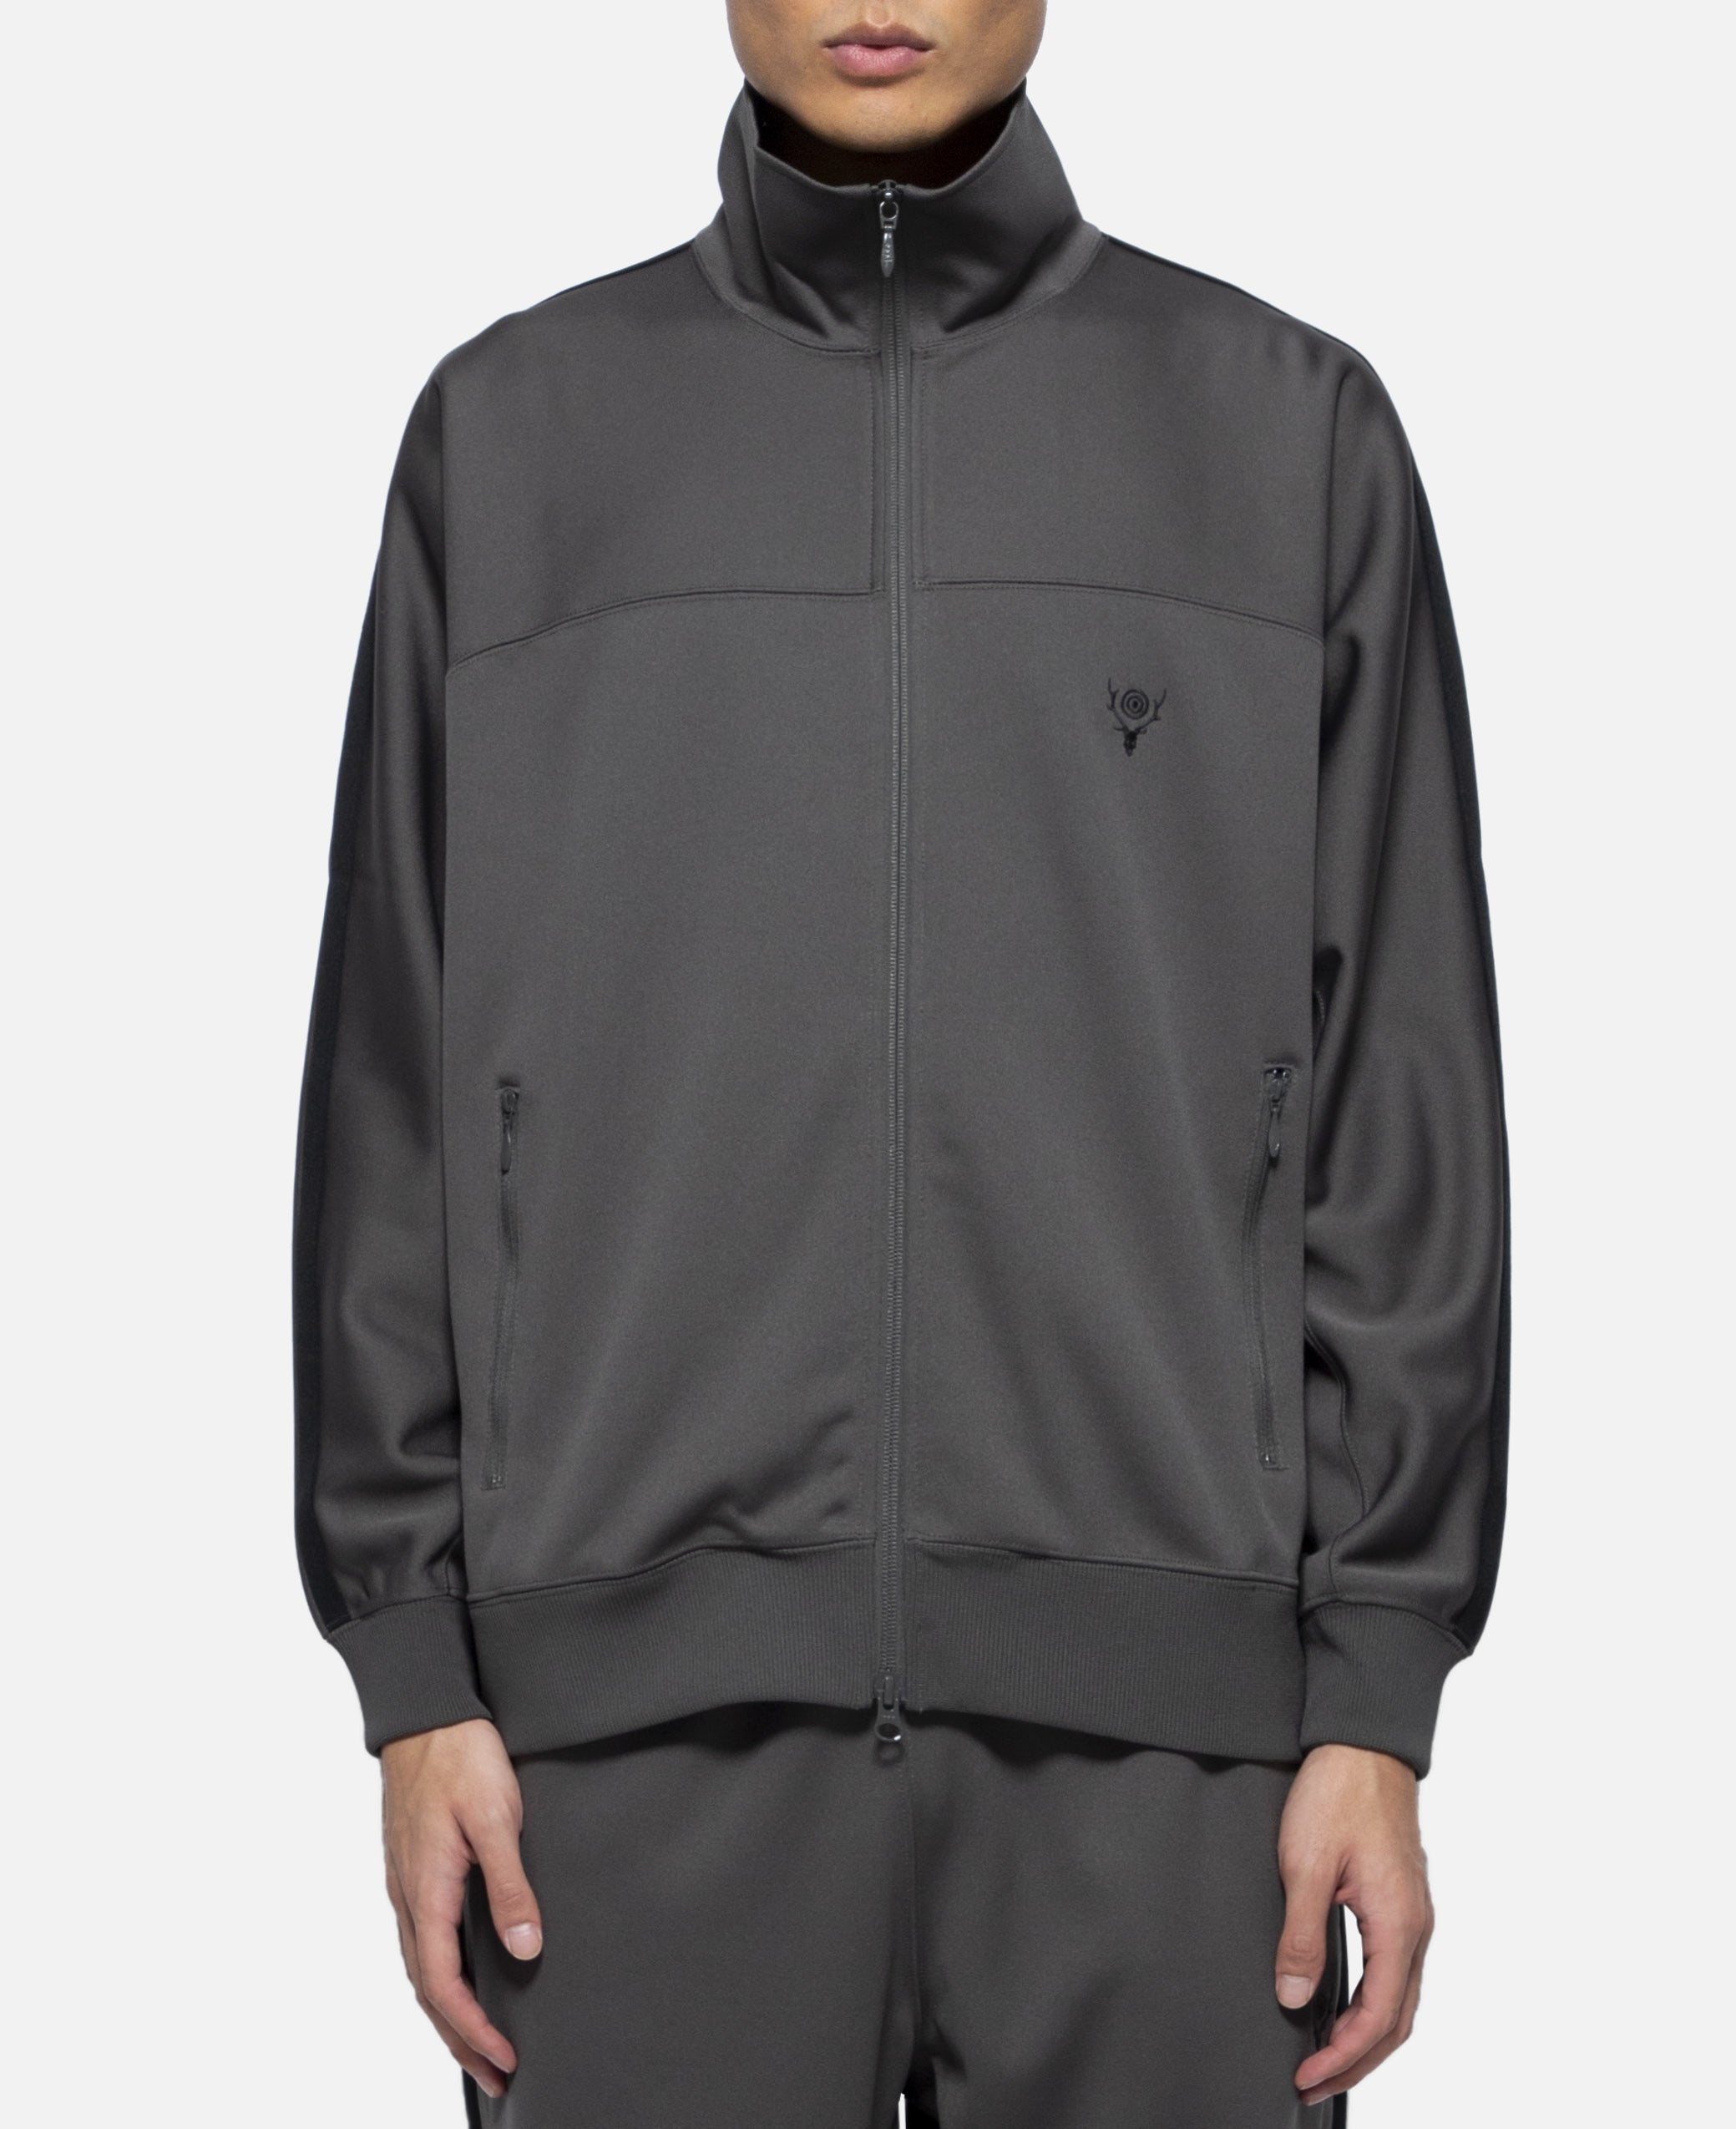 Poly Smooth Trainer Jacket (Charcoal)